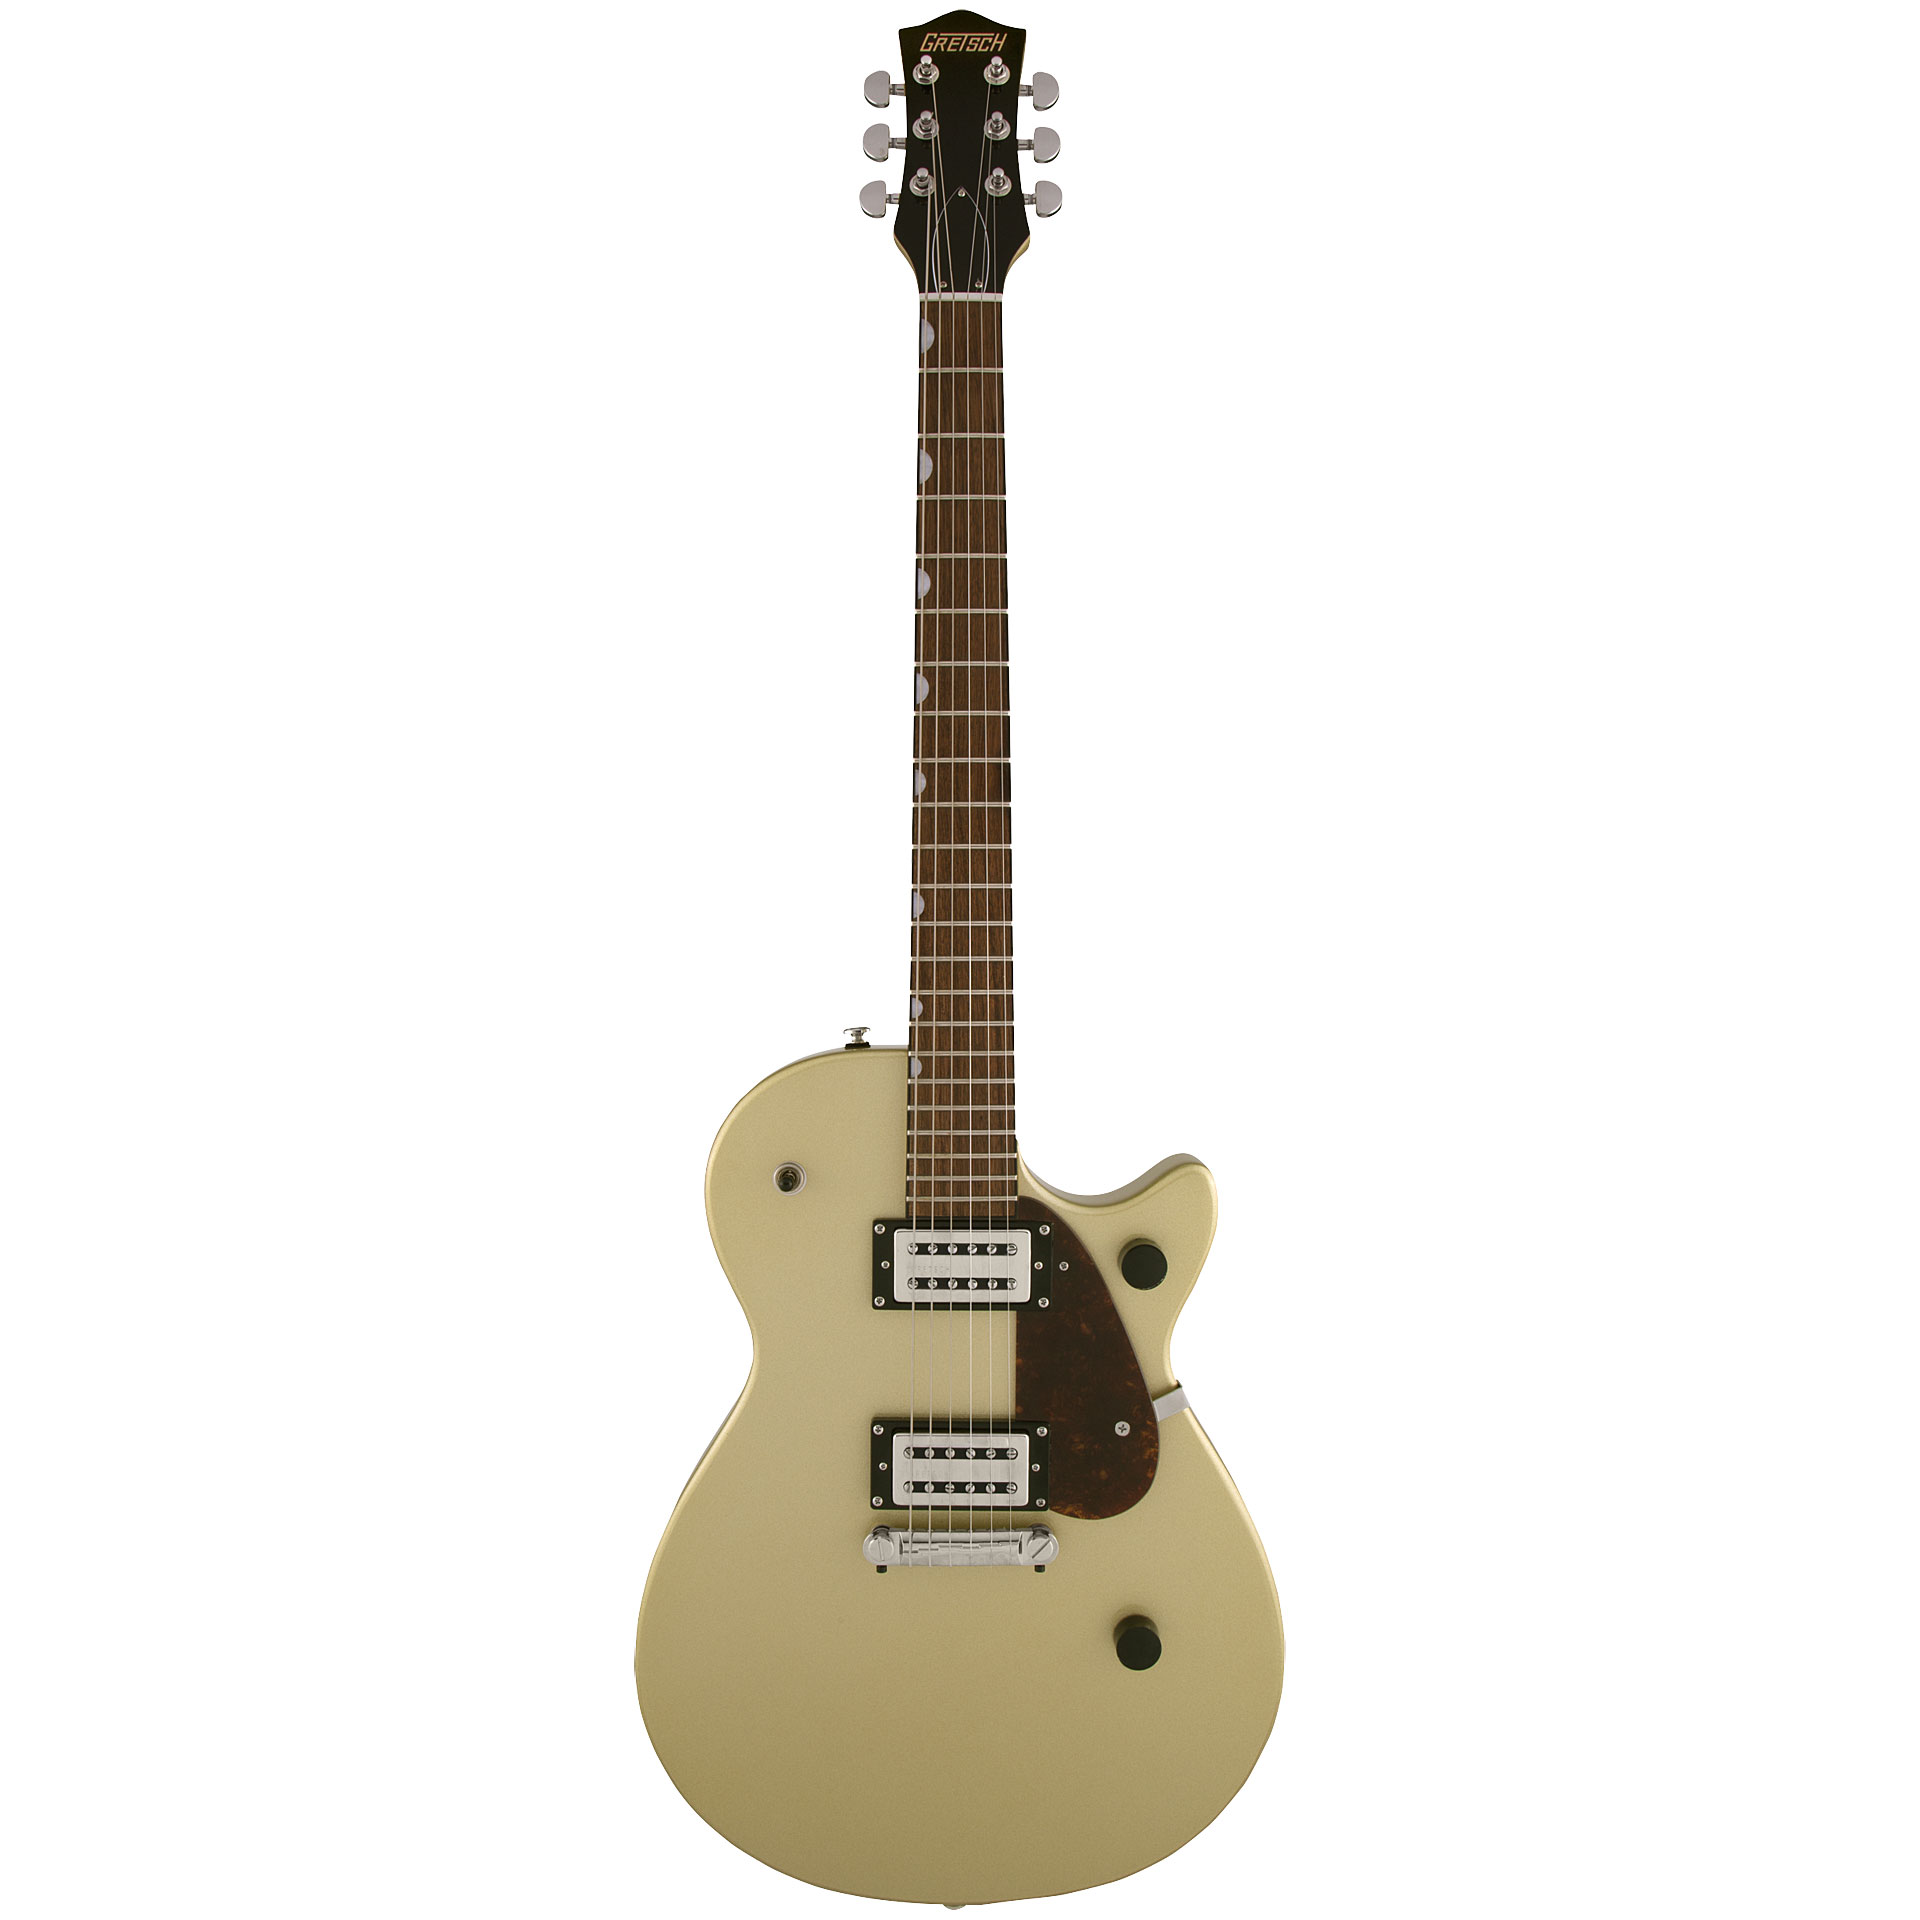 gretsch-guitars-g2210-streamliner-jr-jet-gold-dust